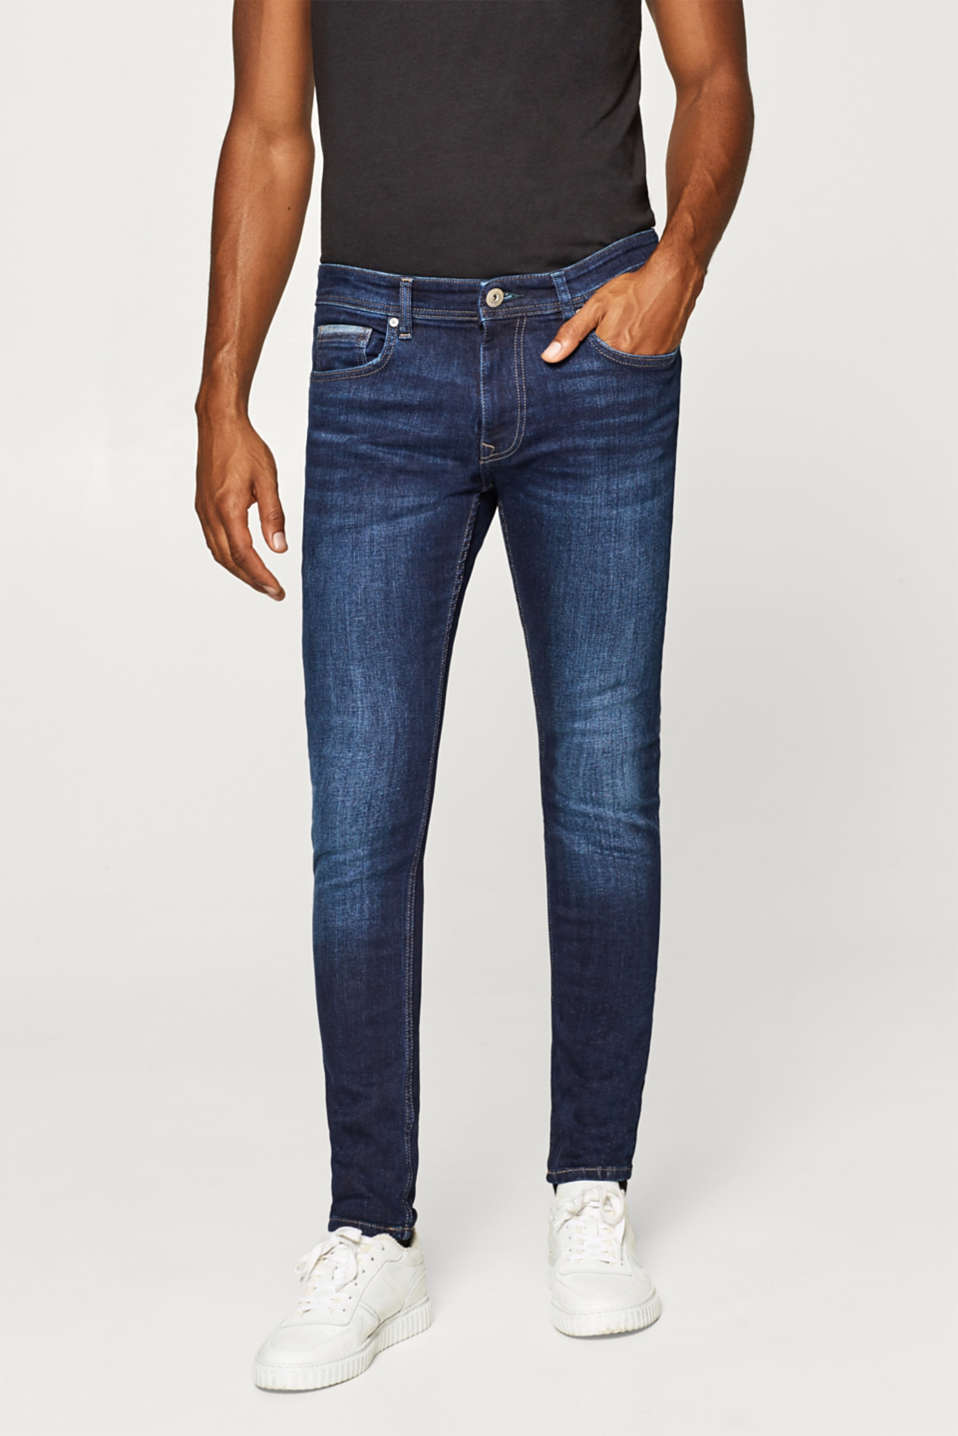 edc - Stretch jeans in a light wash